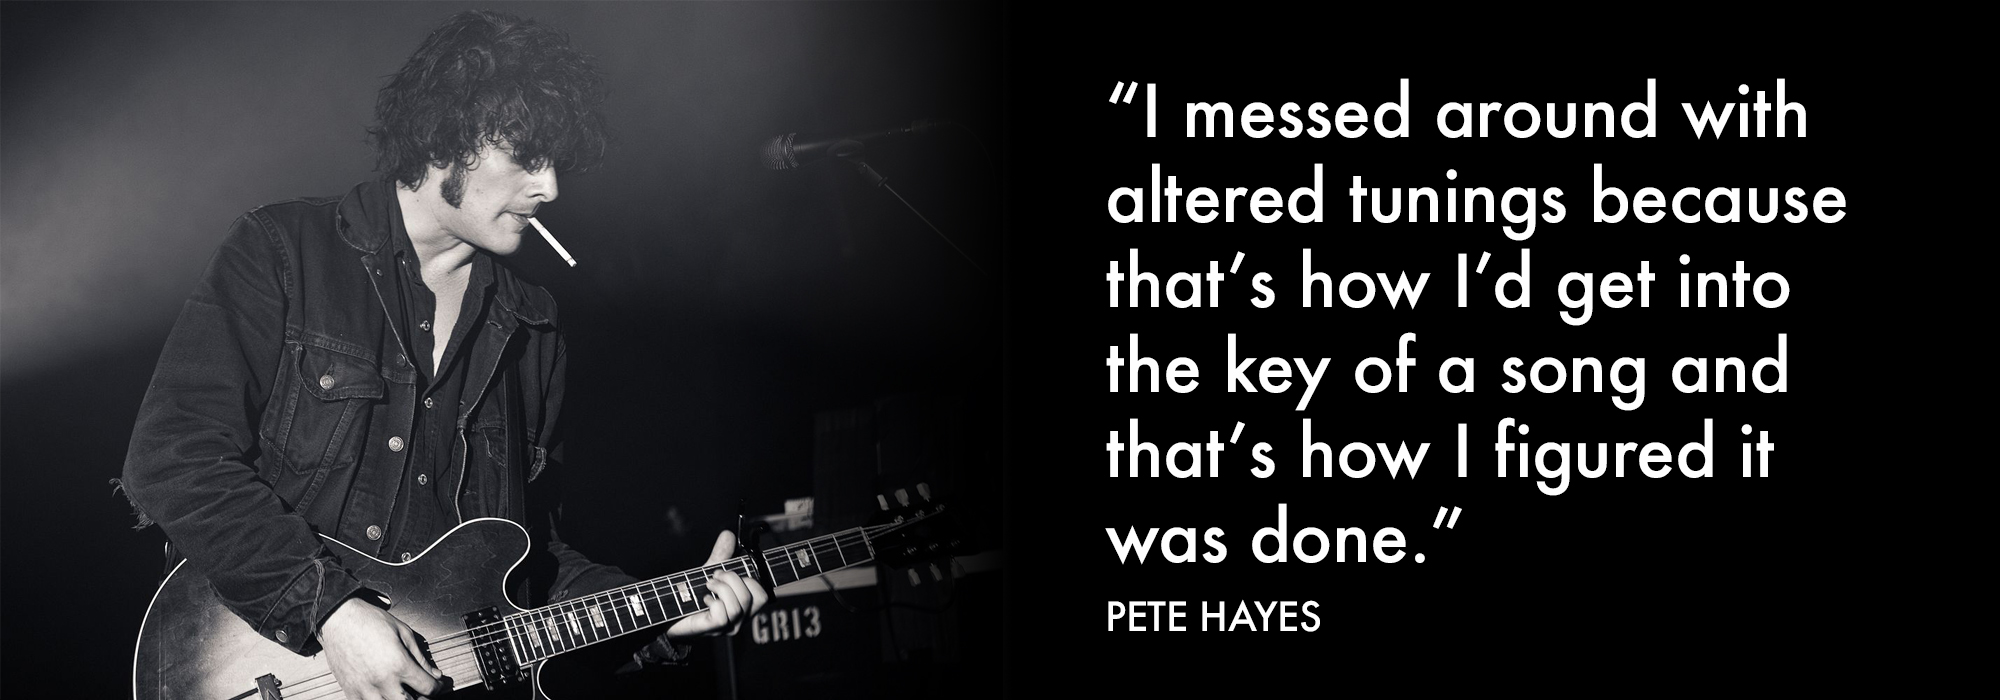 Pete Hayes quote on working out songs